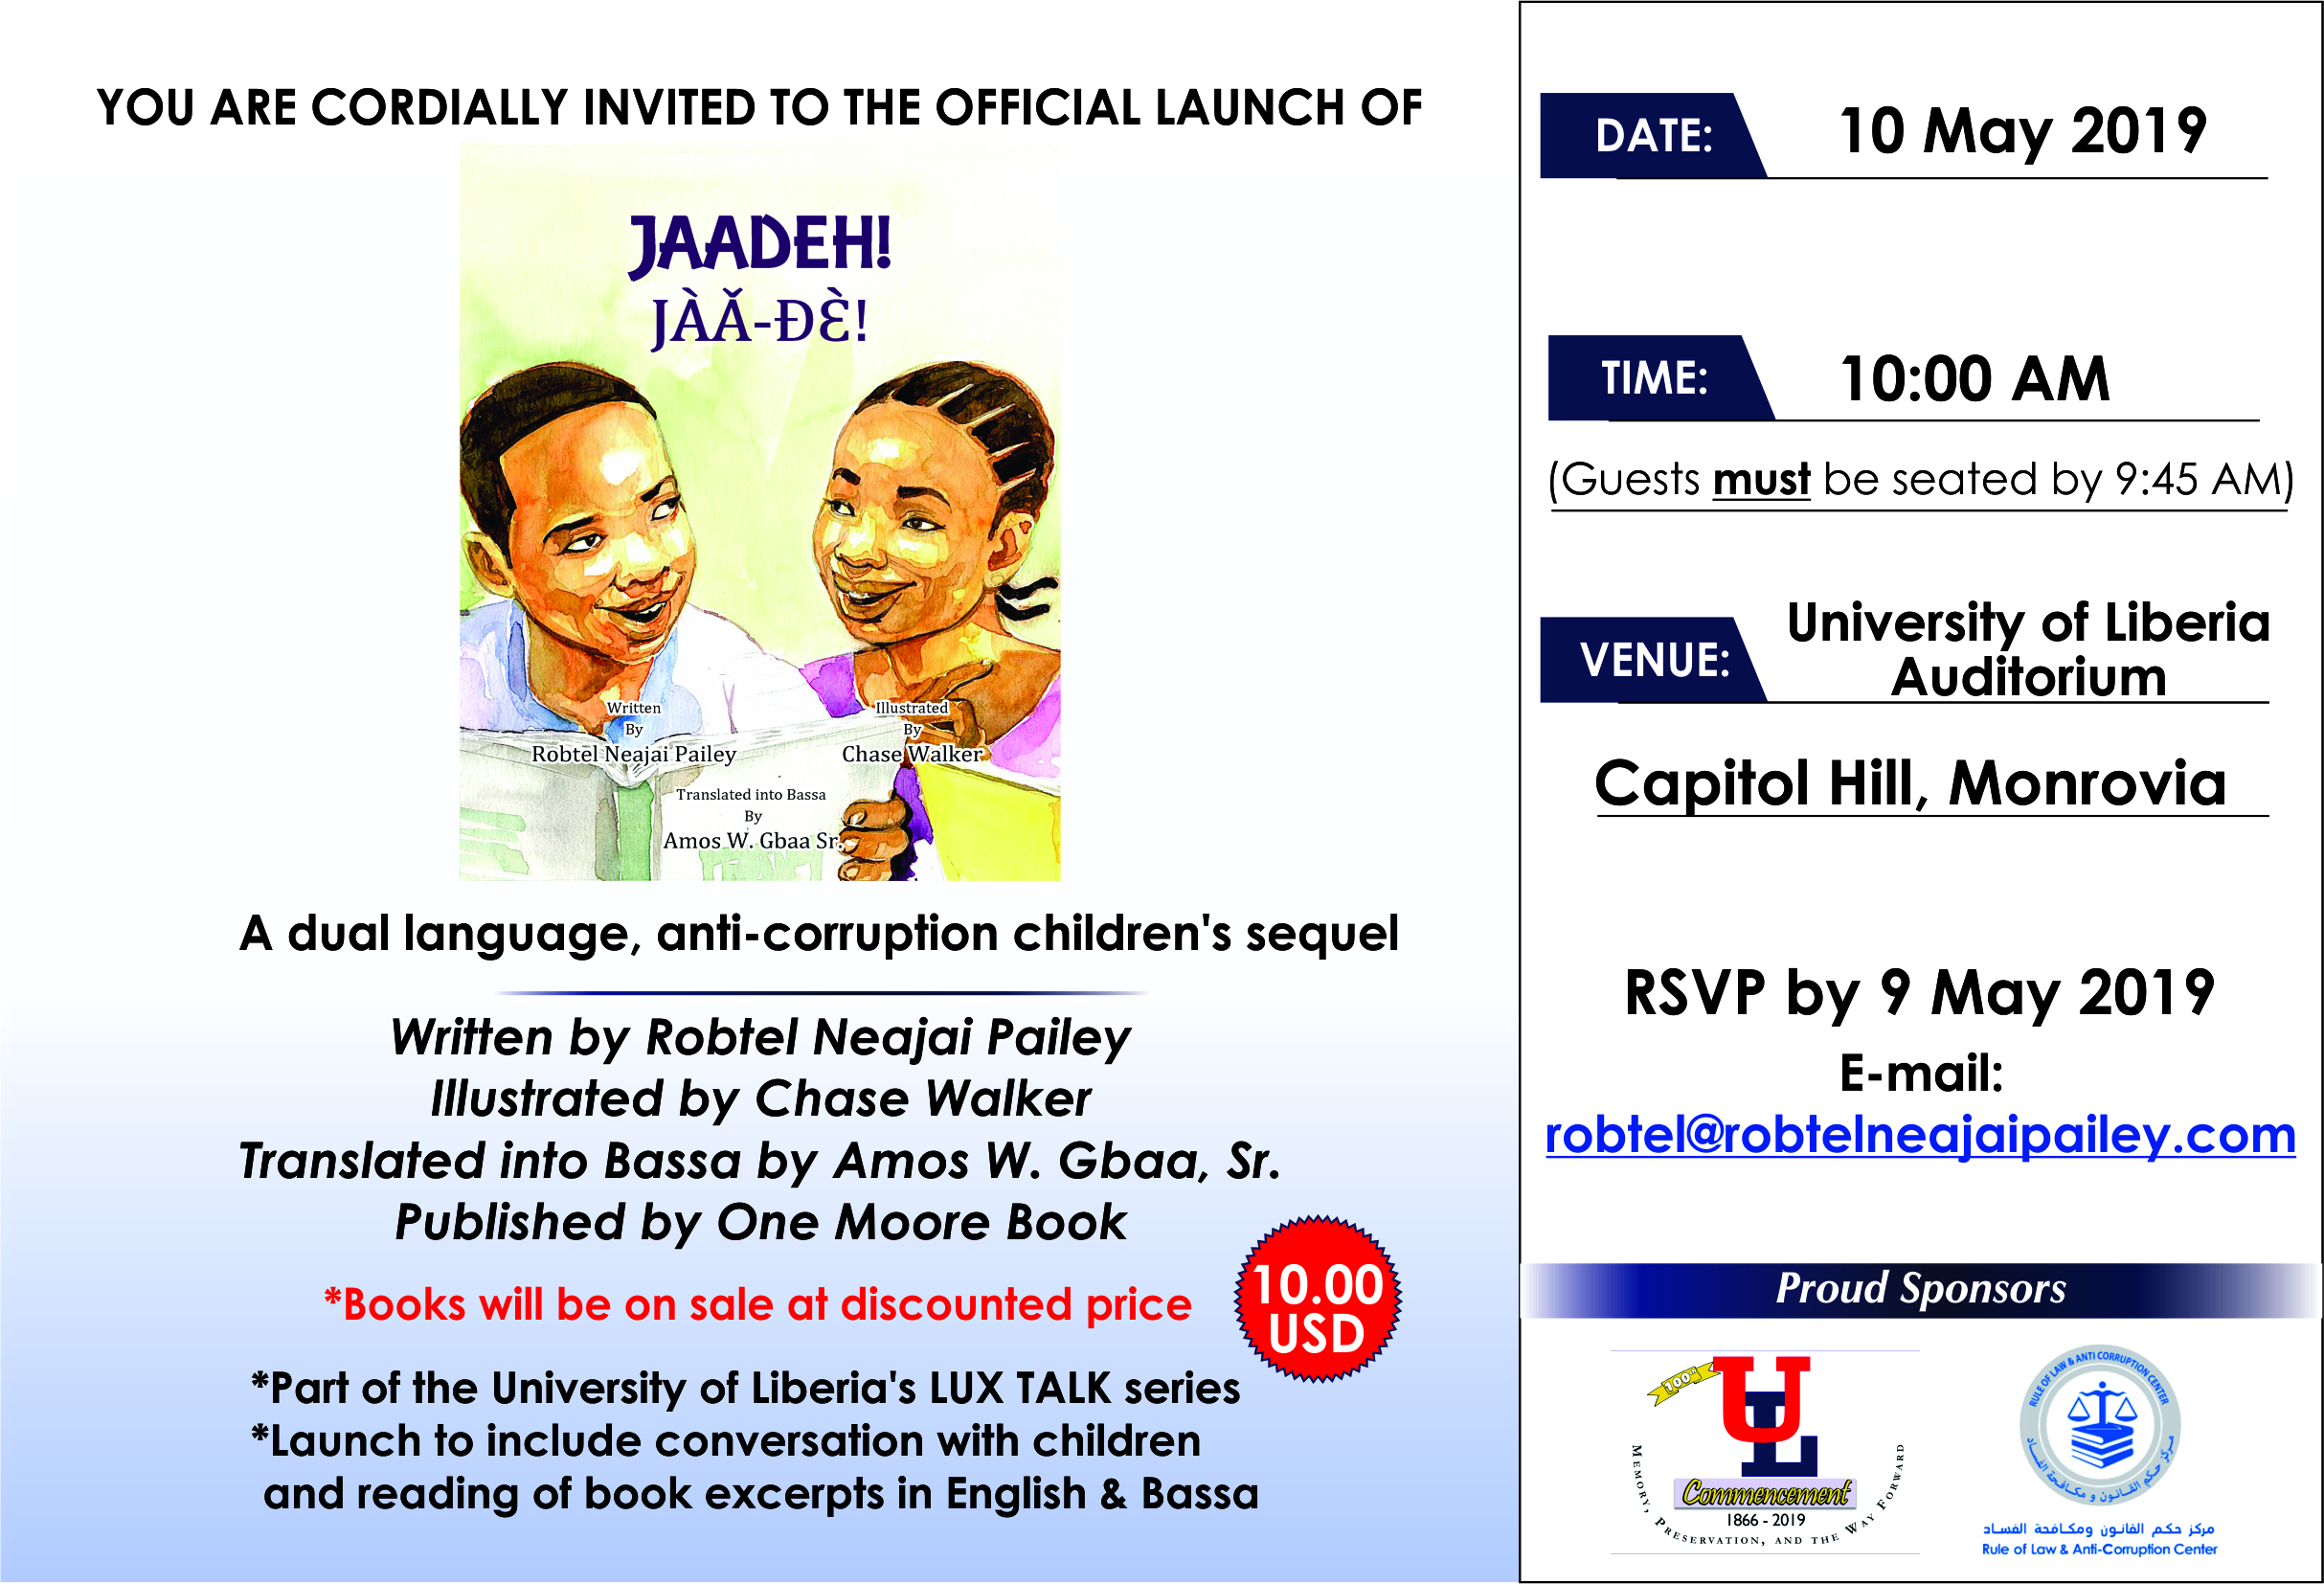 Jaadeh! Official Launch Invitation.jpg